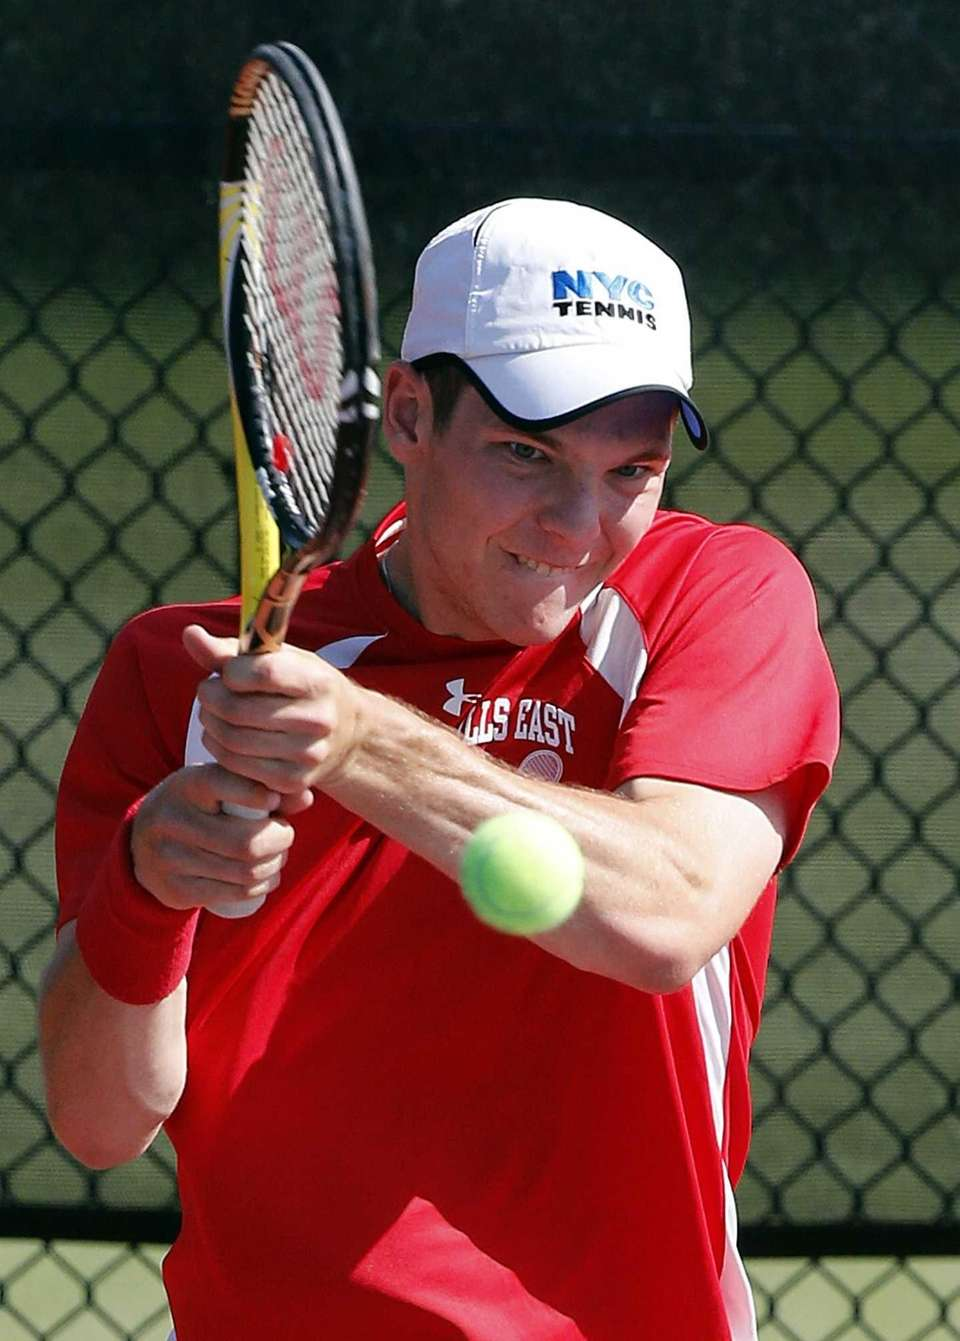 Hills East's Jeff Cherkin hits a backhand return